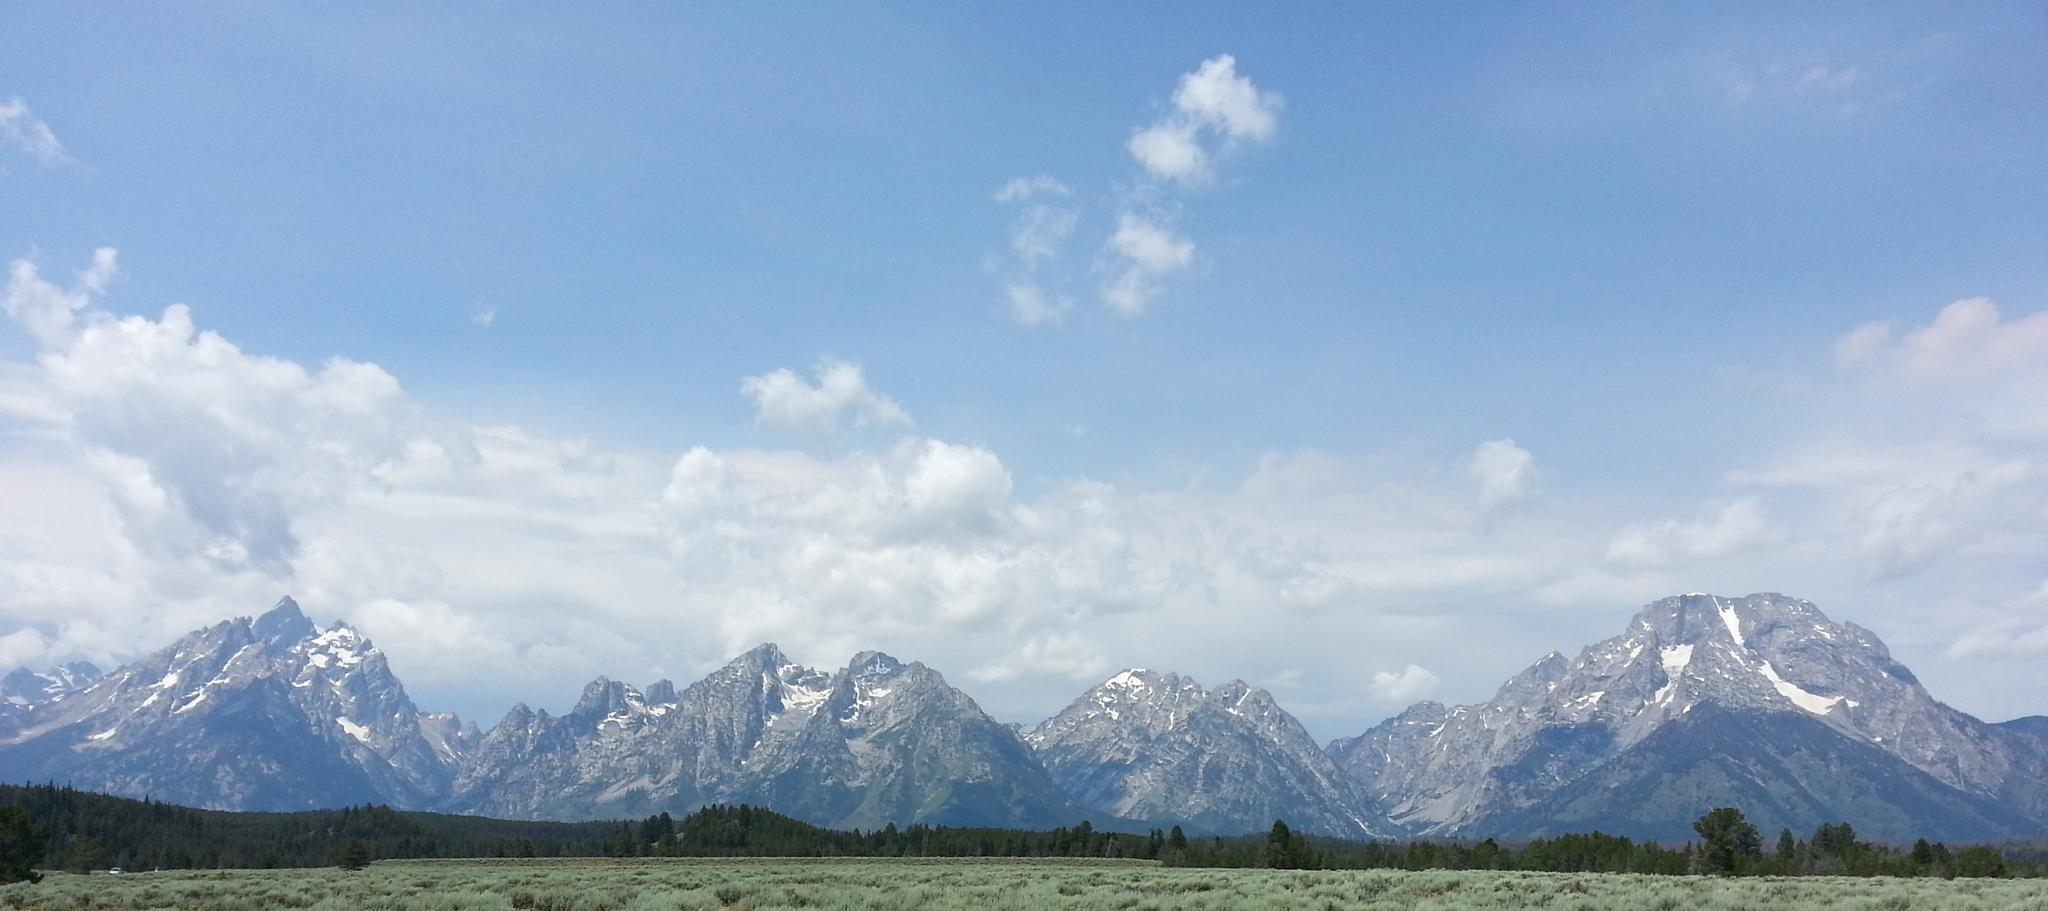 Grand Teton National Park by drcarlosesparza